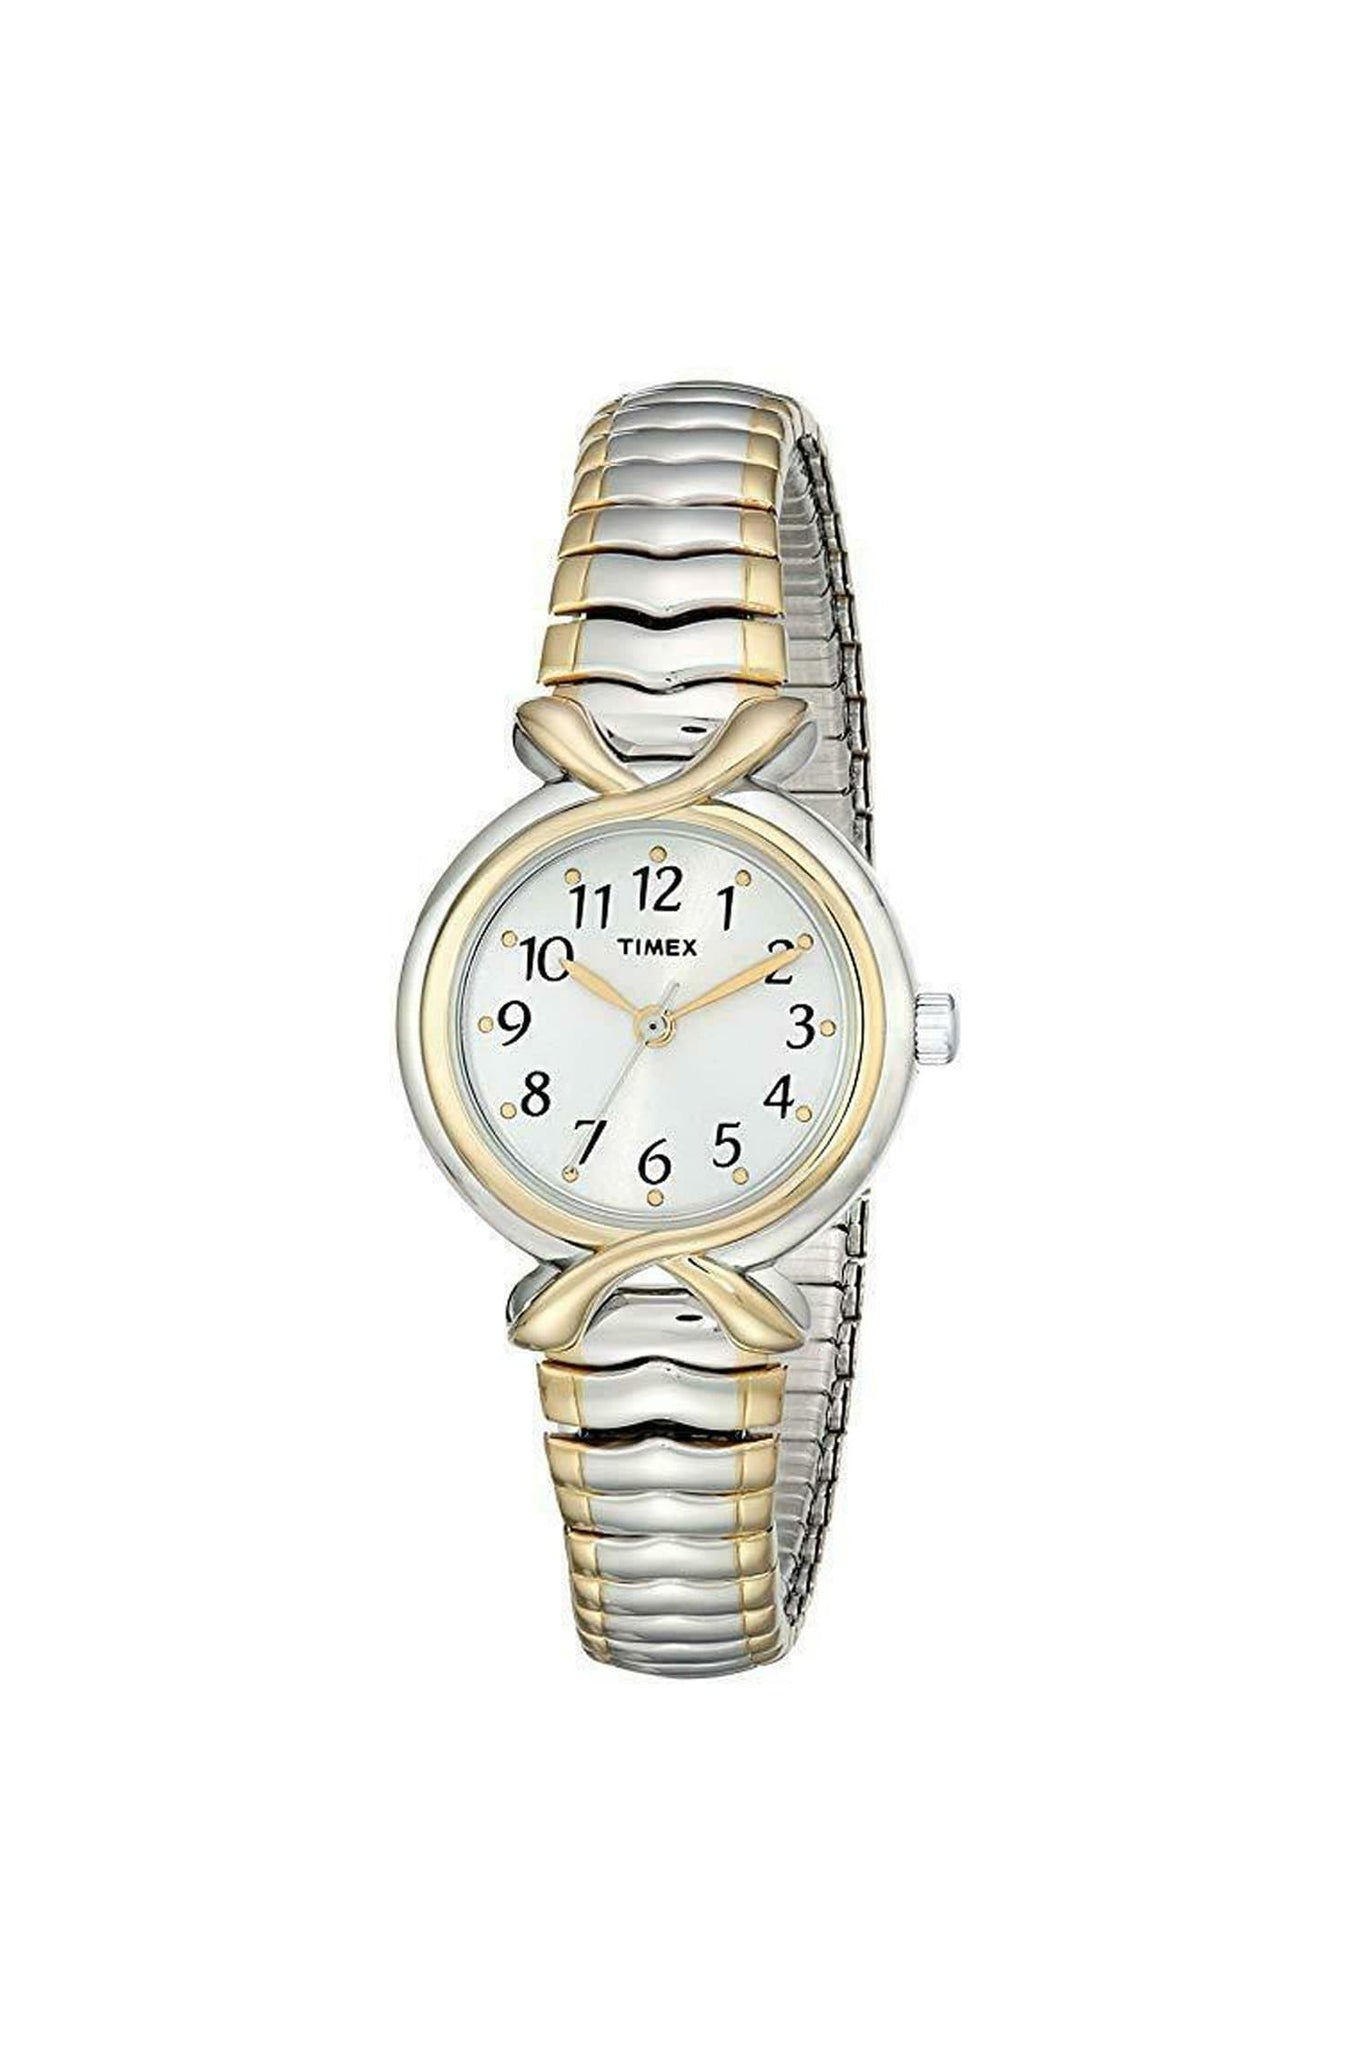 WCHSILVG - Women's Timex Stainless Steel Watch